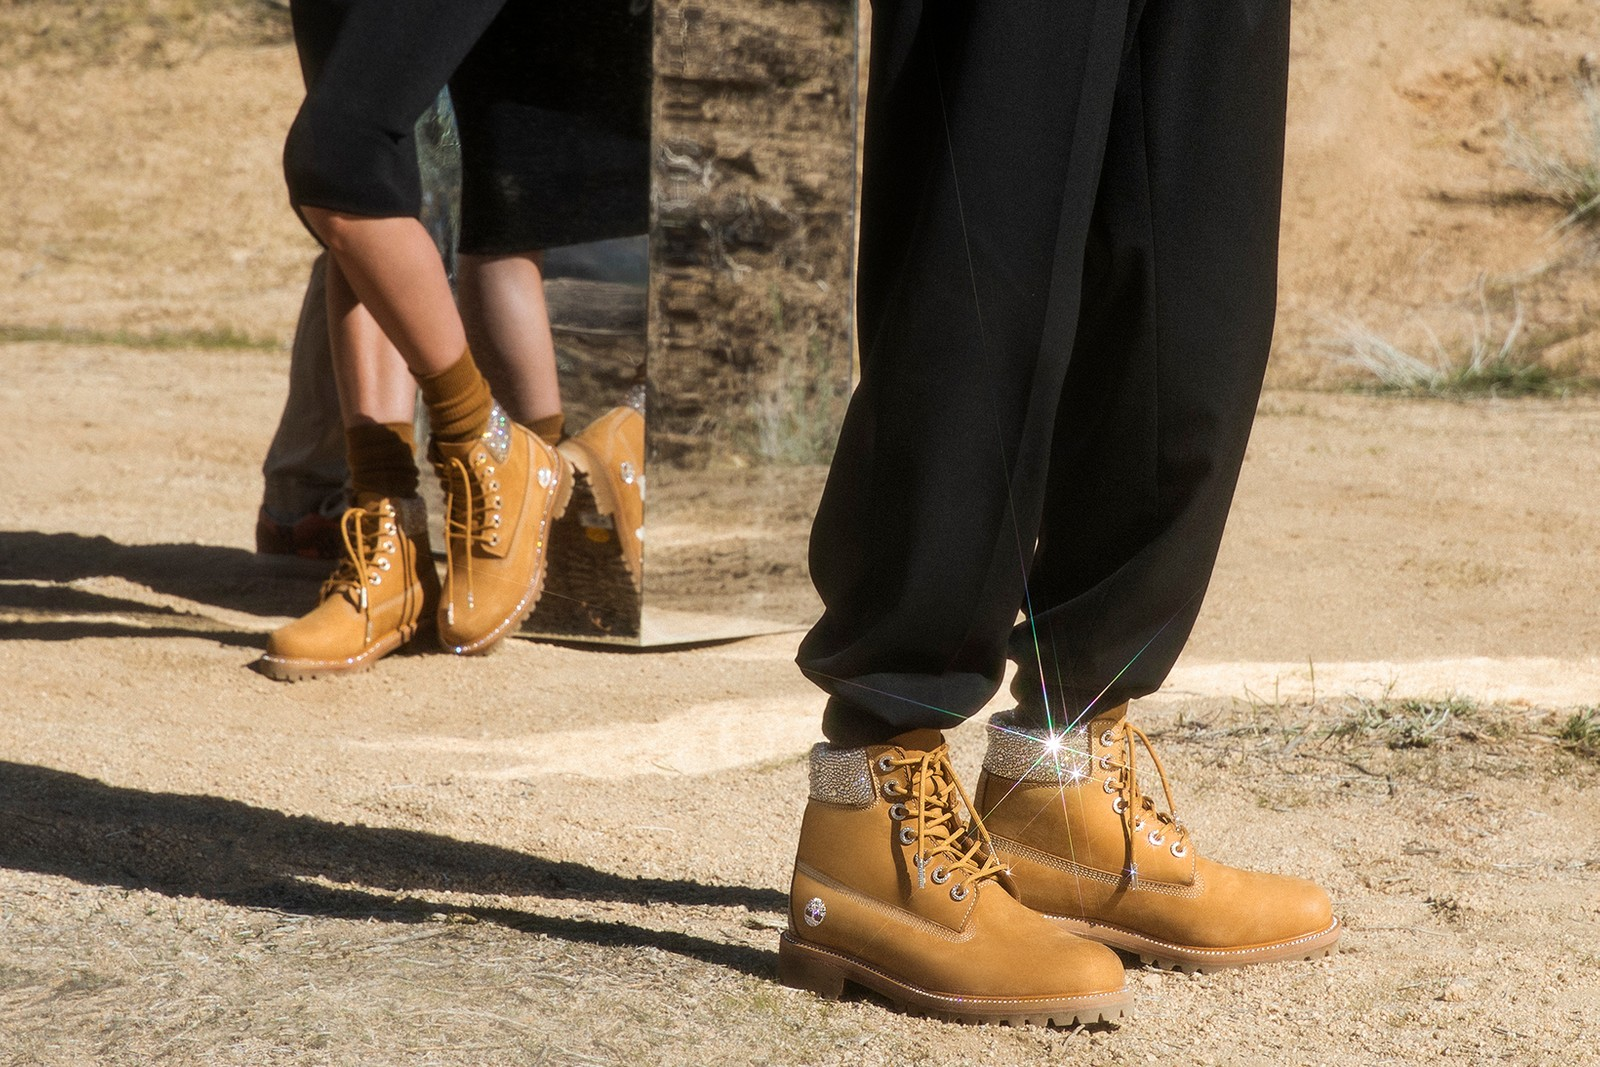 Jimmy Choo x Timberland Swarovski Footwear Collection Kith Boot Wheat Black